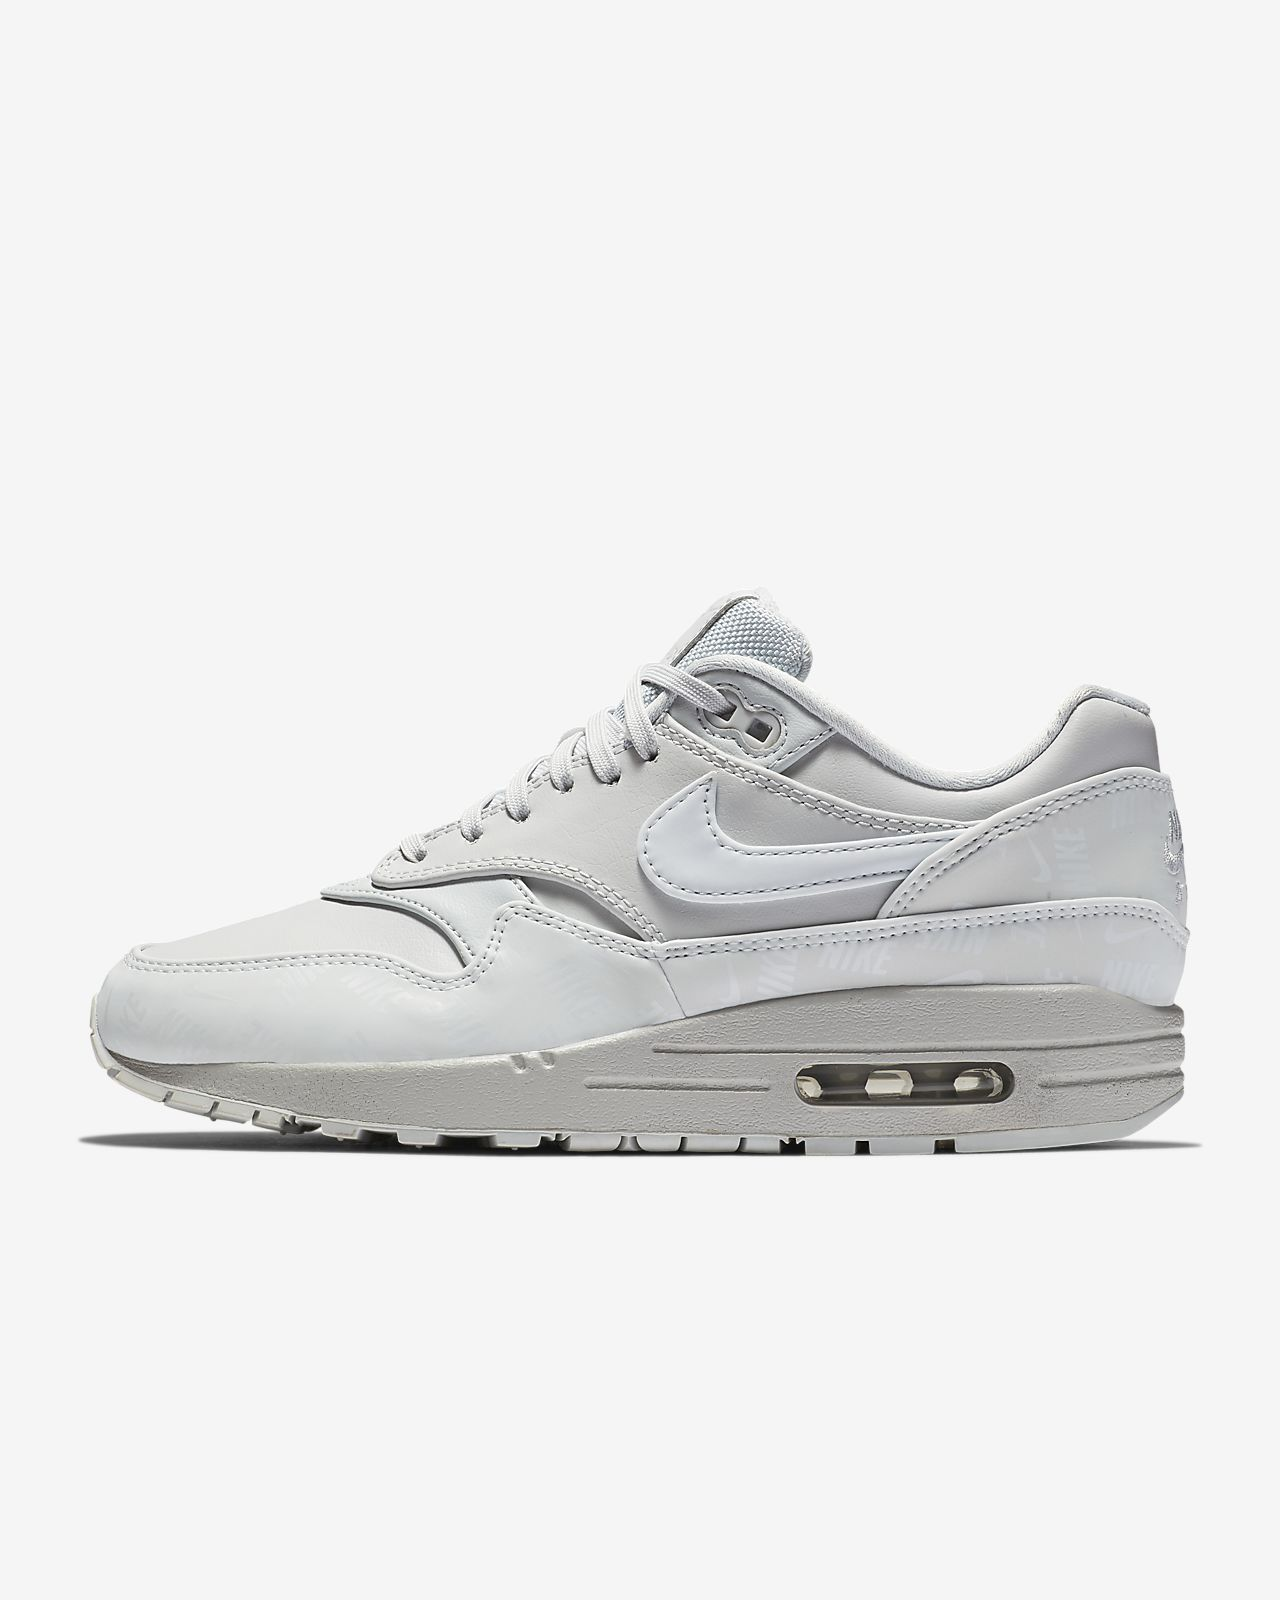 16b0b703353 Nike Air Max 1 LX Women s Shoe. Nike.com GB